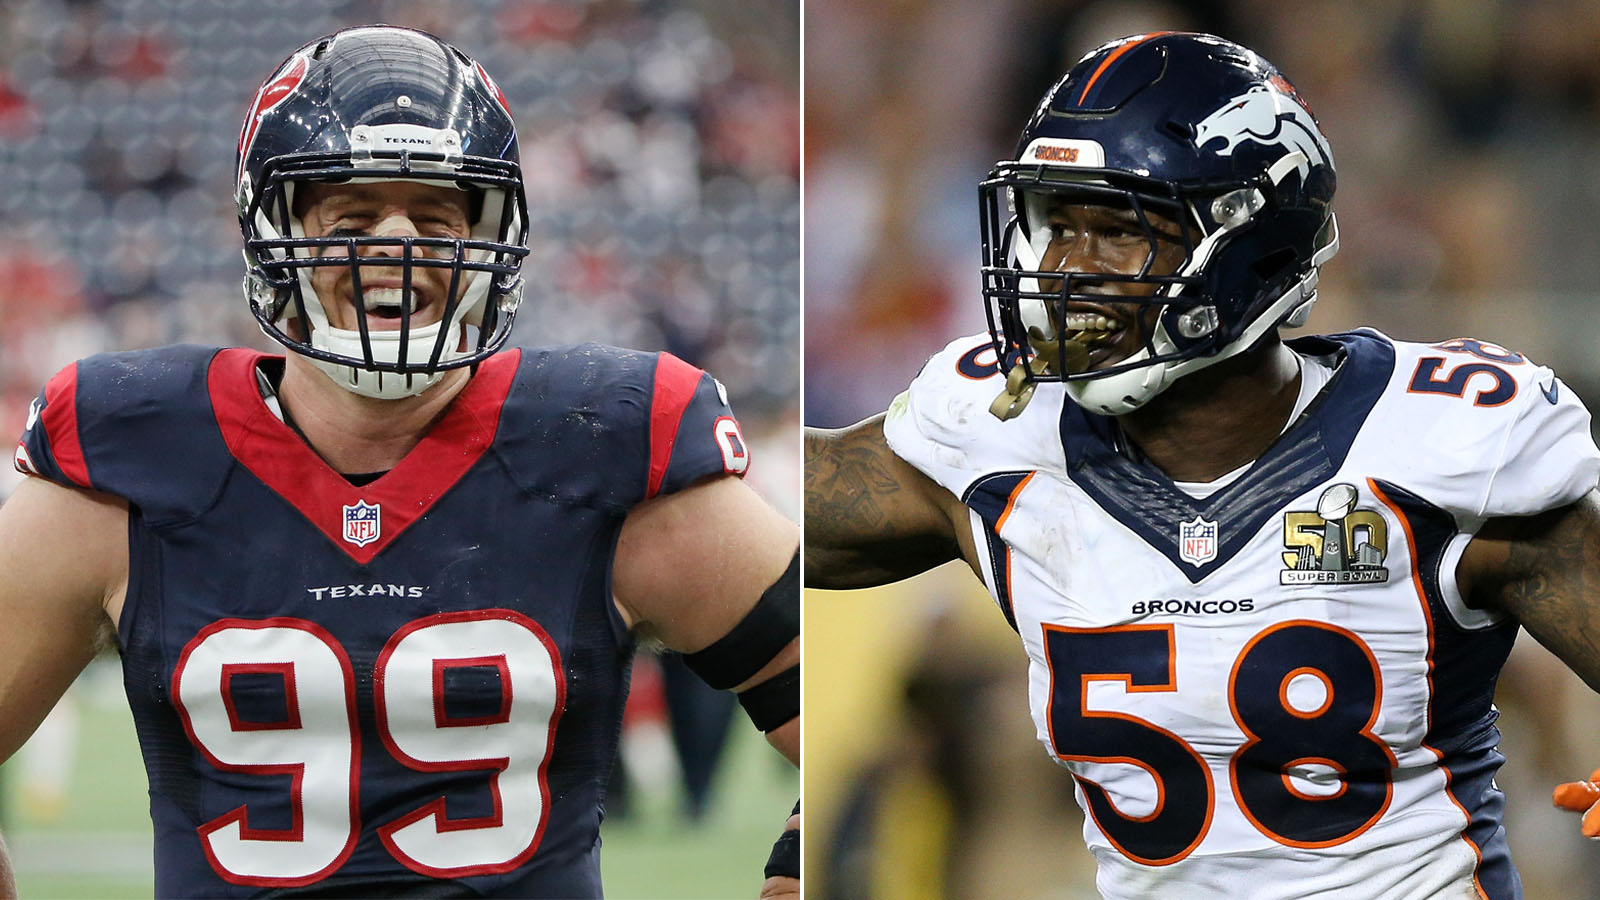 Ranking the top 10 pass rushers in the NFL